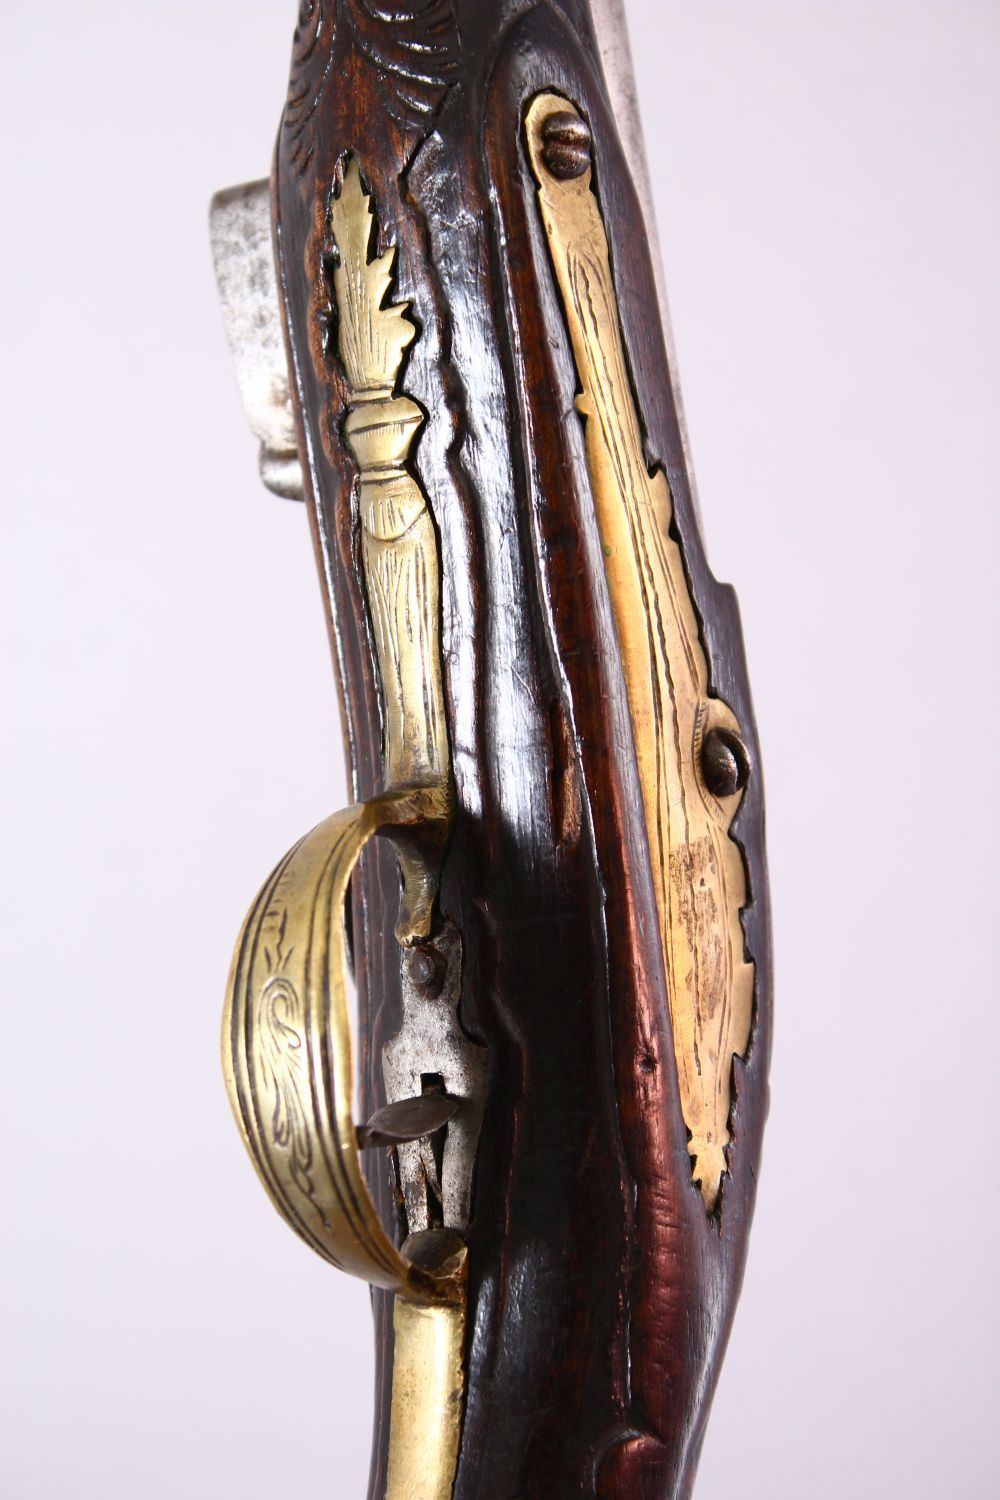 AN 18TH CENTURY ANGLO INDIAN FLINTLOCK PISTOL, engraved barrel, carved stock with wire inlaid - Image 3 of 4